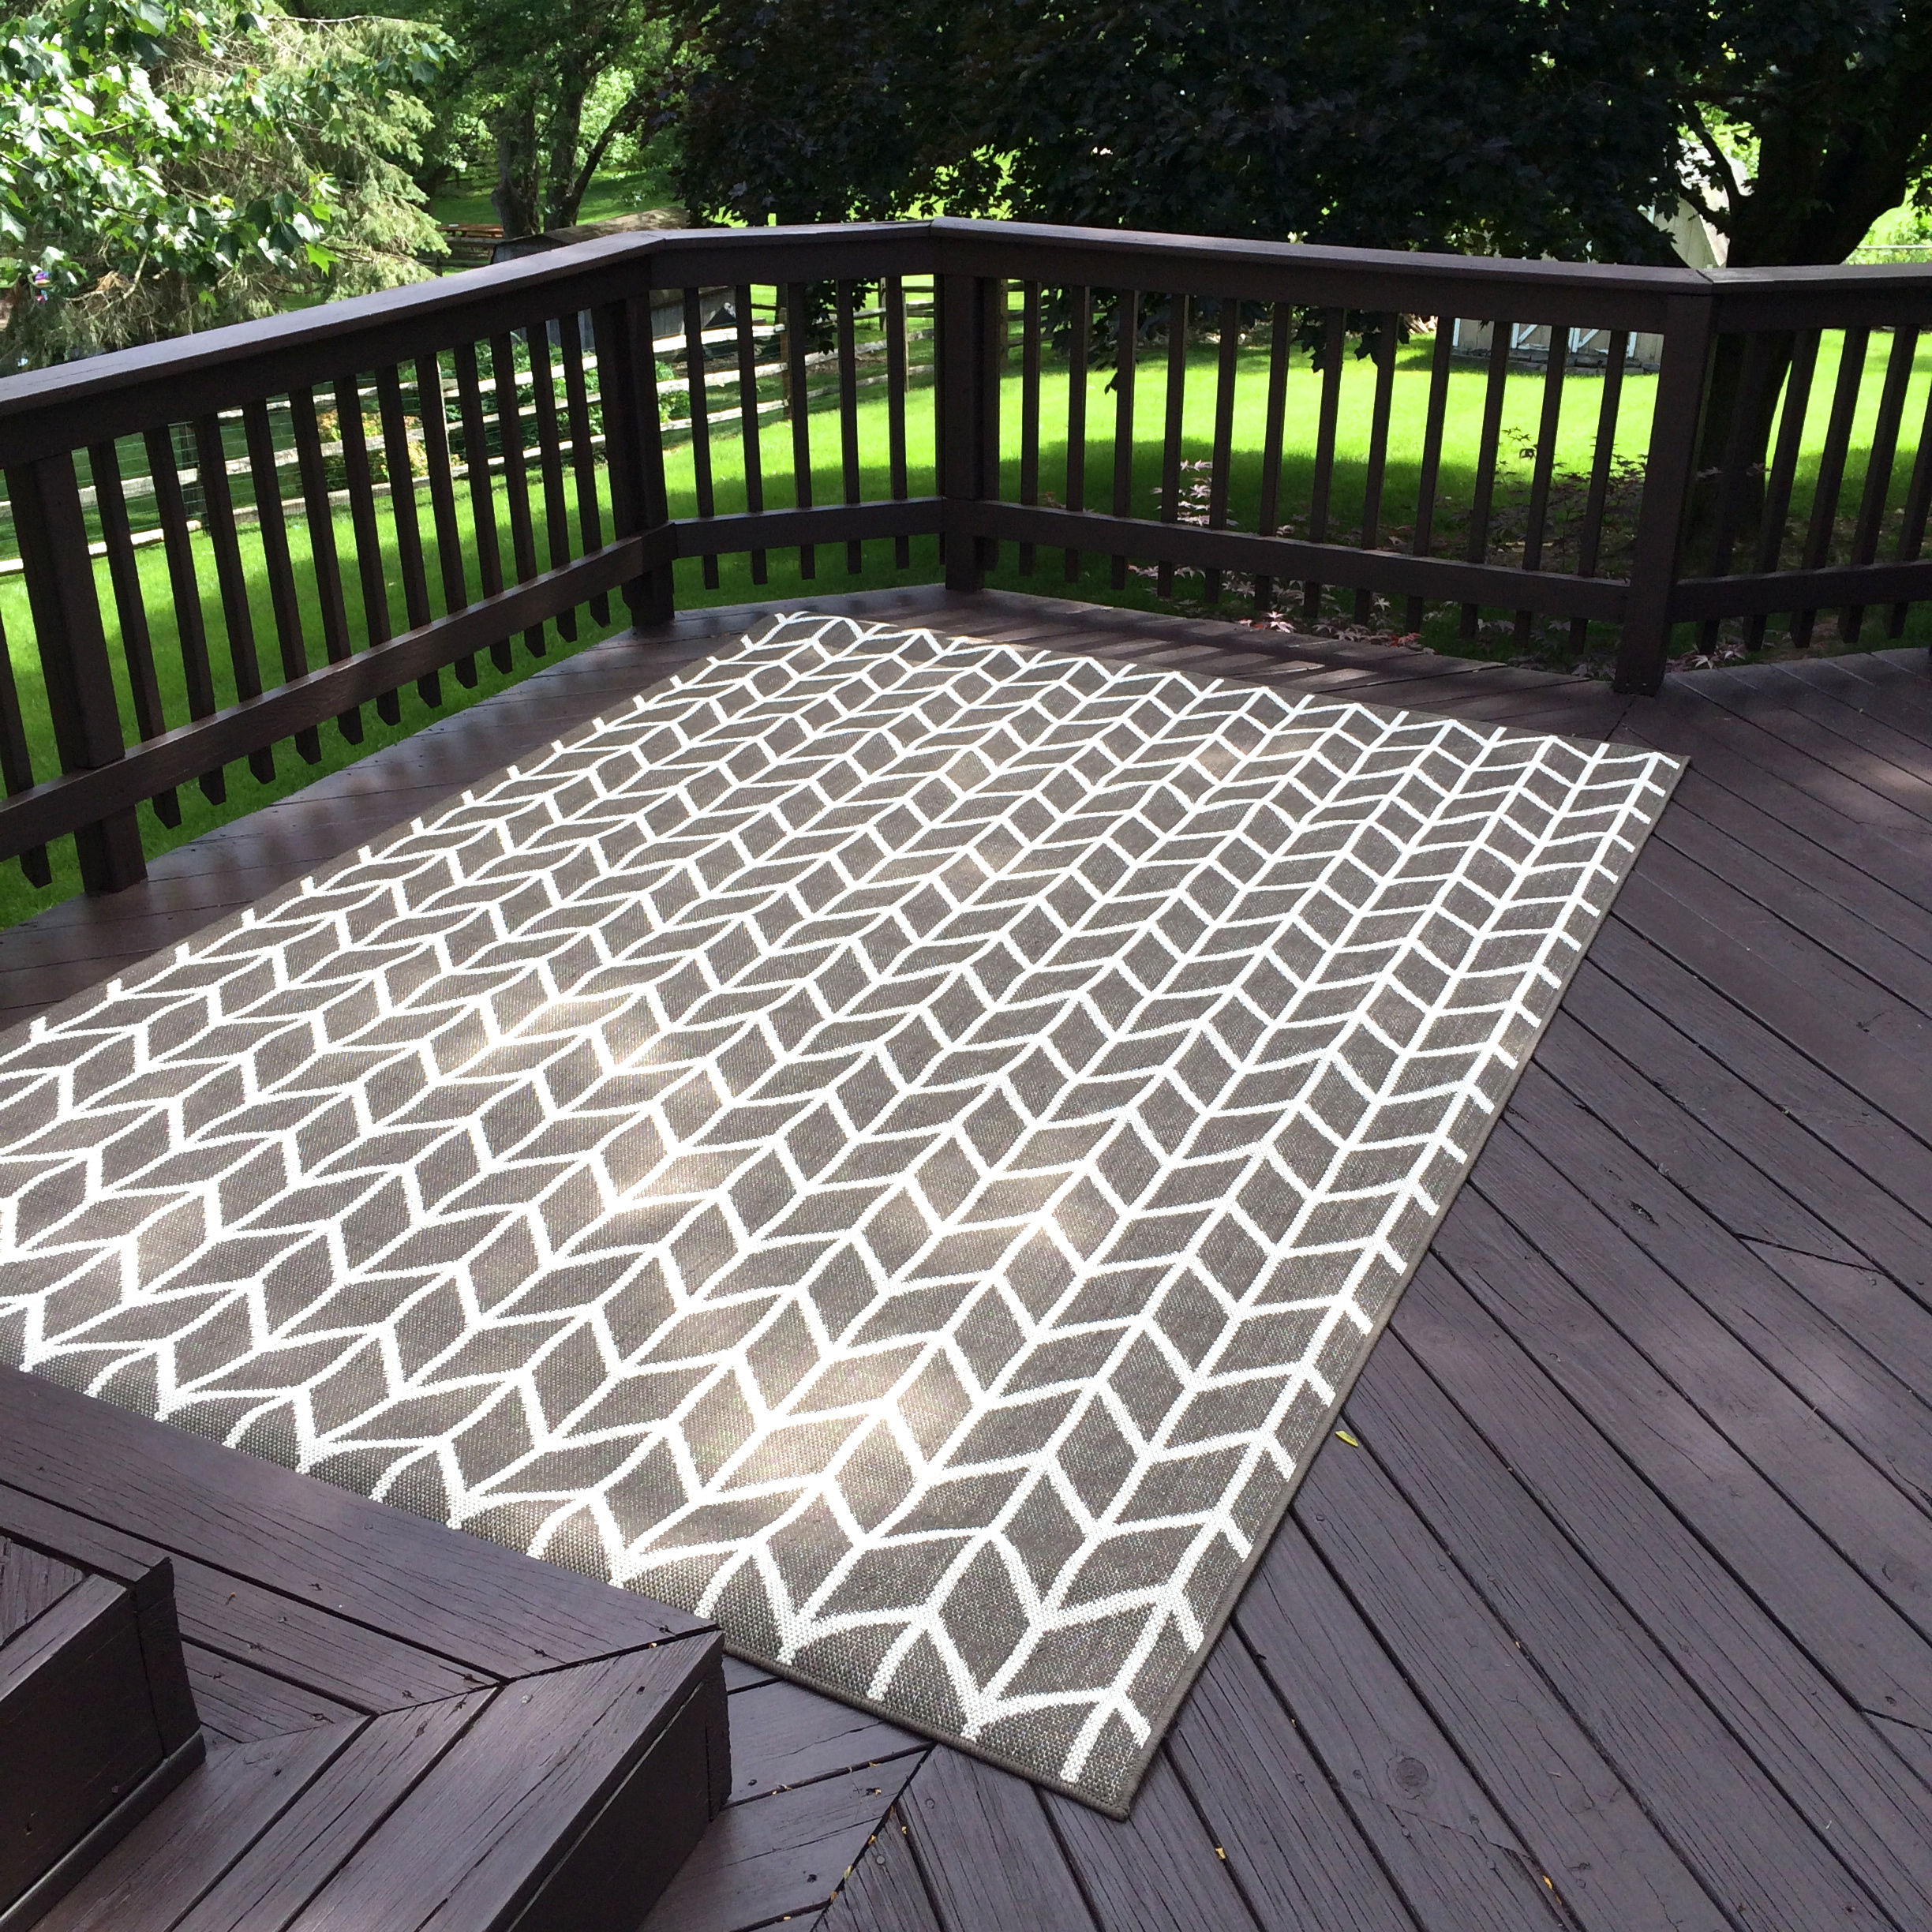 Deck Stain 101 The Perfect Outdoor Couch Deck Diaries Part 1